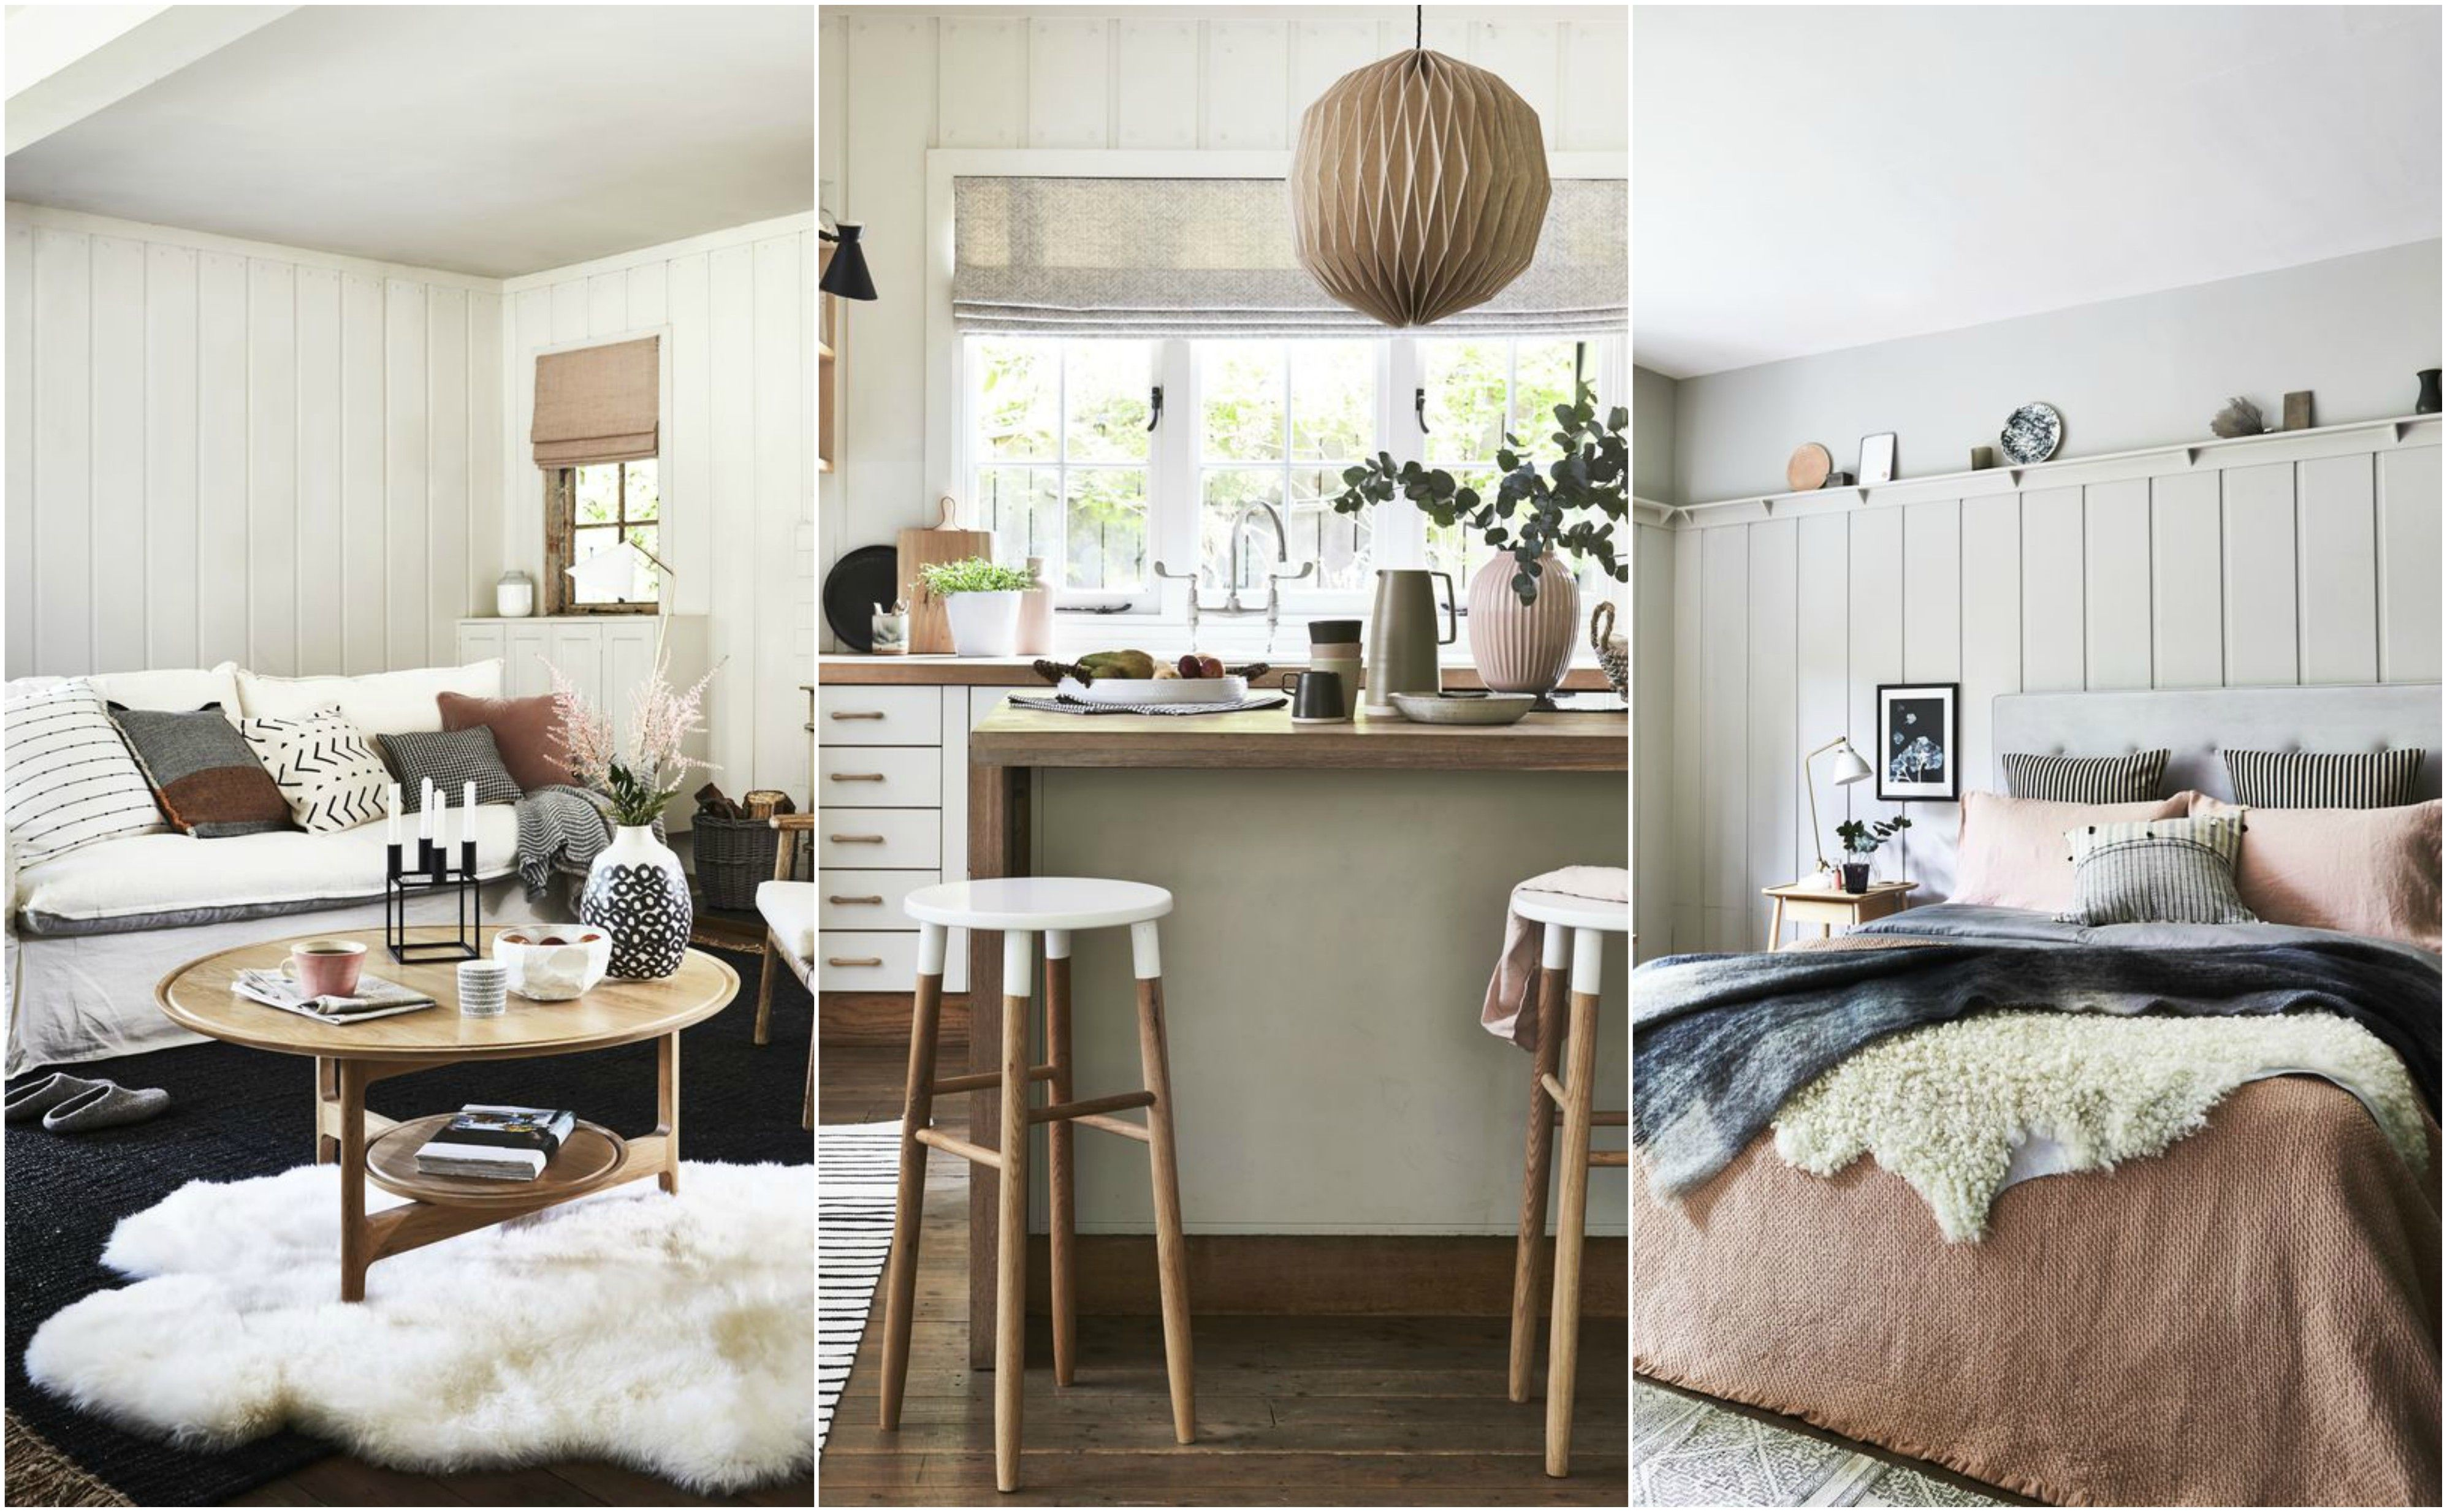 7 neutral decorating ideas with a hint of pink for every room of your home